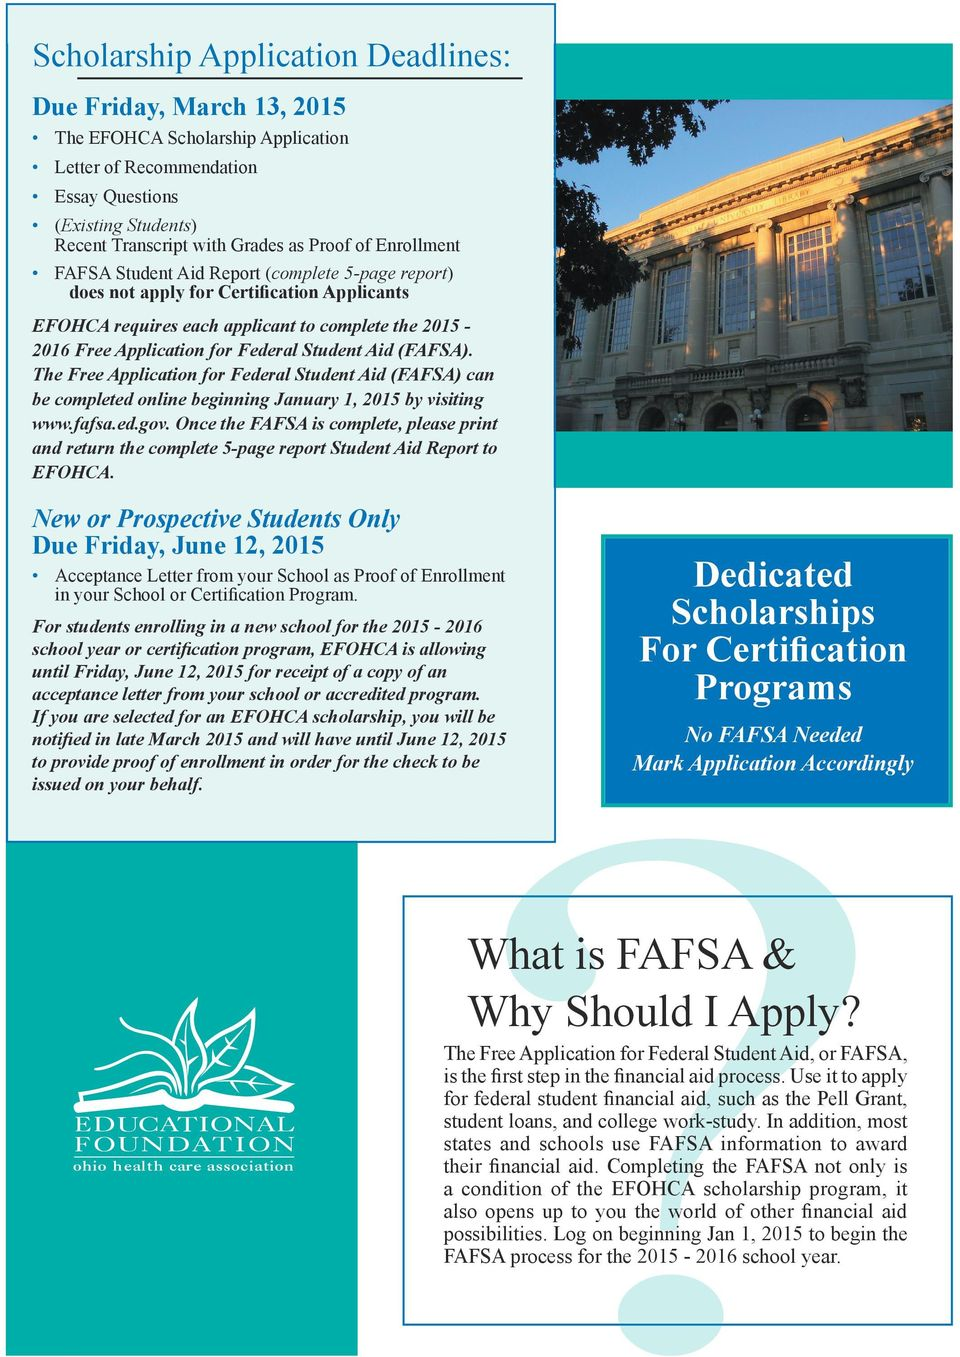 Aid (FAFSA). The Free Application for Federal Student Aid (FAFSA) can be completed online beginning January 1, 2015 by visiting www.fafsa.ed.gov.